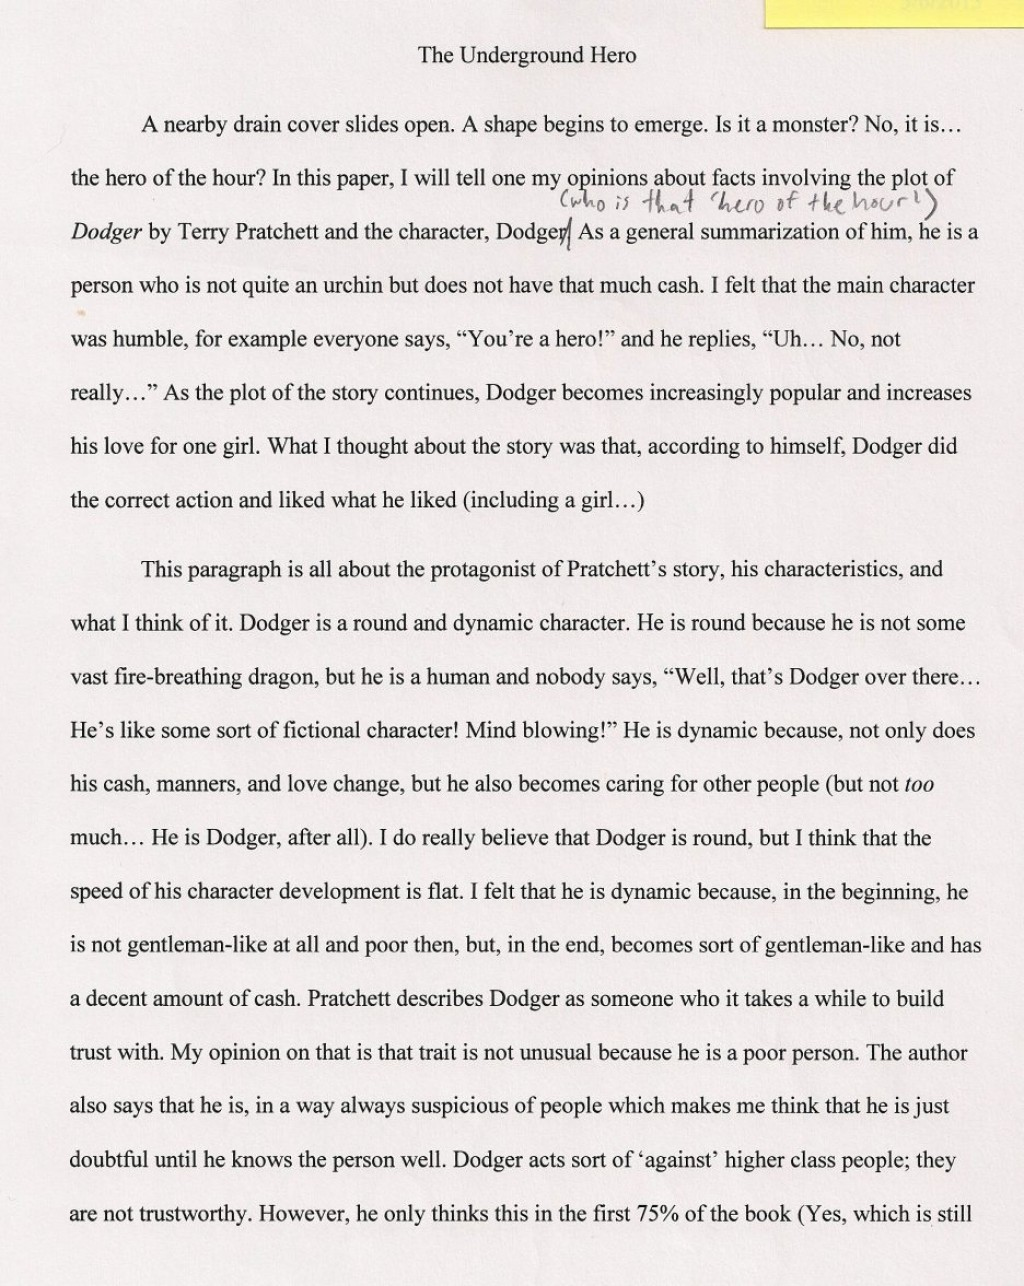 001 Essay About Real Life Heroes The Underground Hero National On Heros Journey Define Is Odysseus My True Oedipus Tragic Mom Conclusion Good Okonkwo Beowulf Example Defining Definition 936x1176 Fascinating Unsung In Secret As A Large